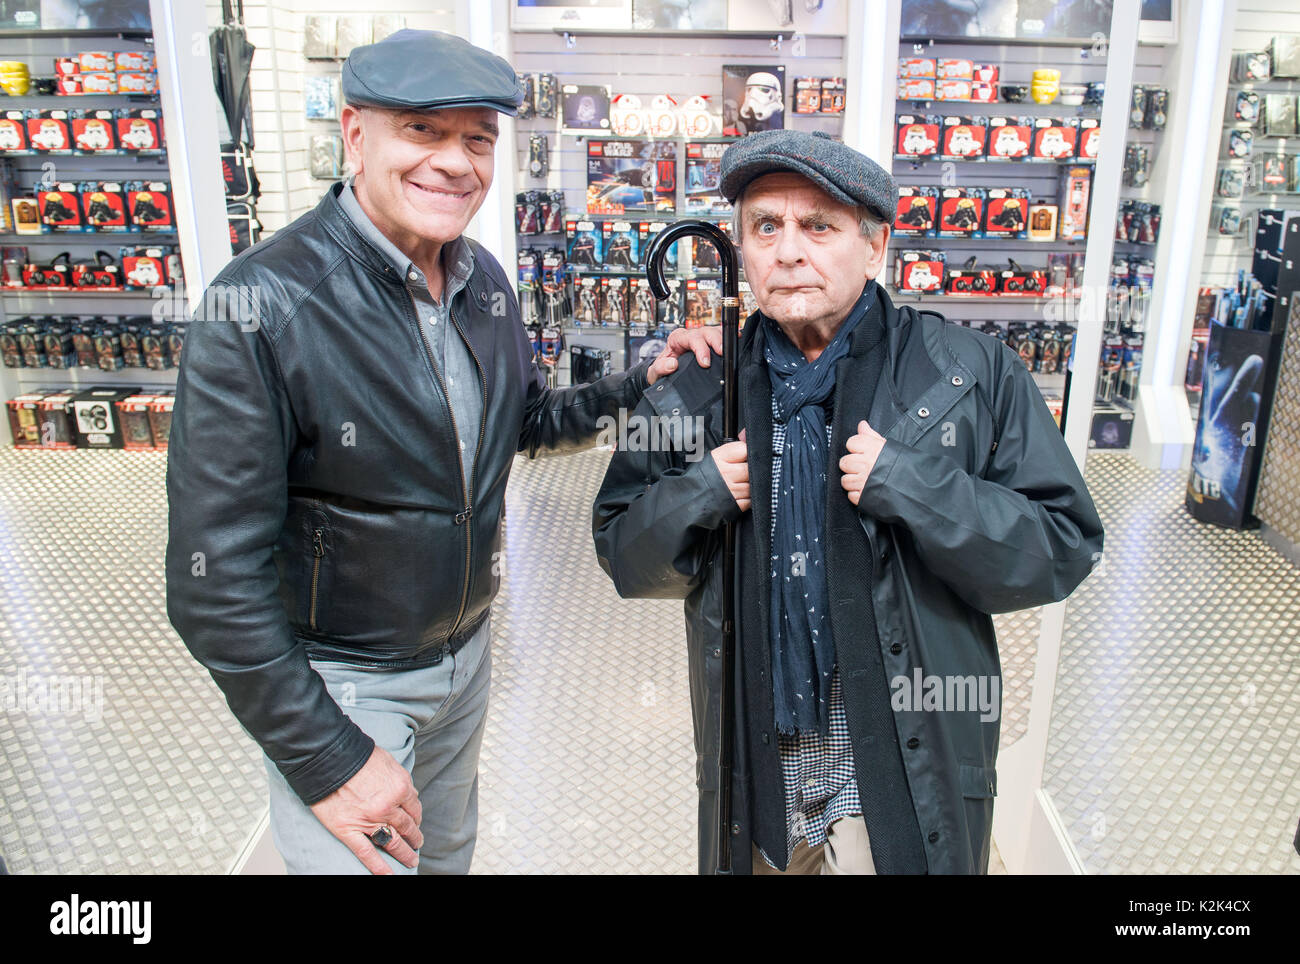 WWW.IANGEORGESONPHOTOGRAPHY.CO.UK Picture: Sylvester McCoy (Dr Who) and Robert Picardo (Star Trek) A Dr Who and Star Trek Doctor to materialise at new - Stock Image